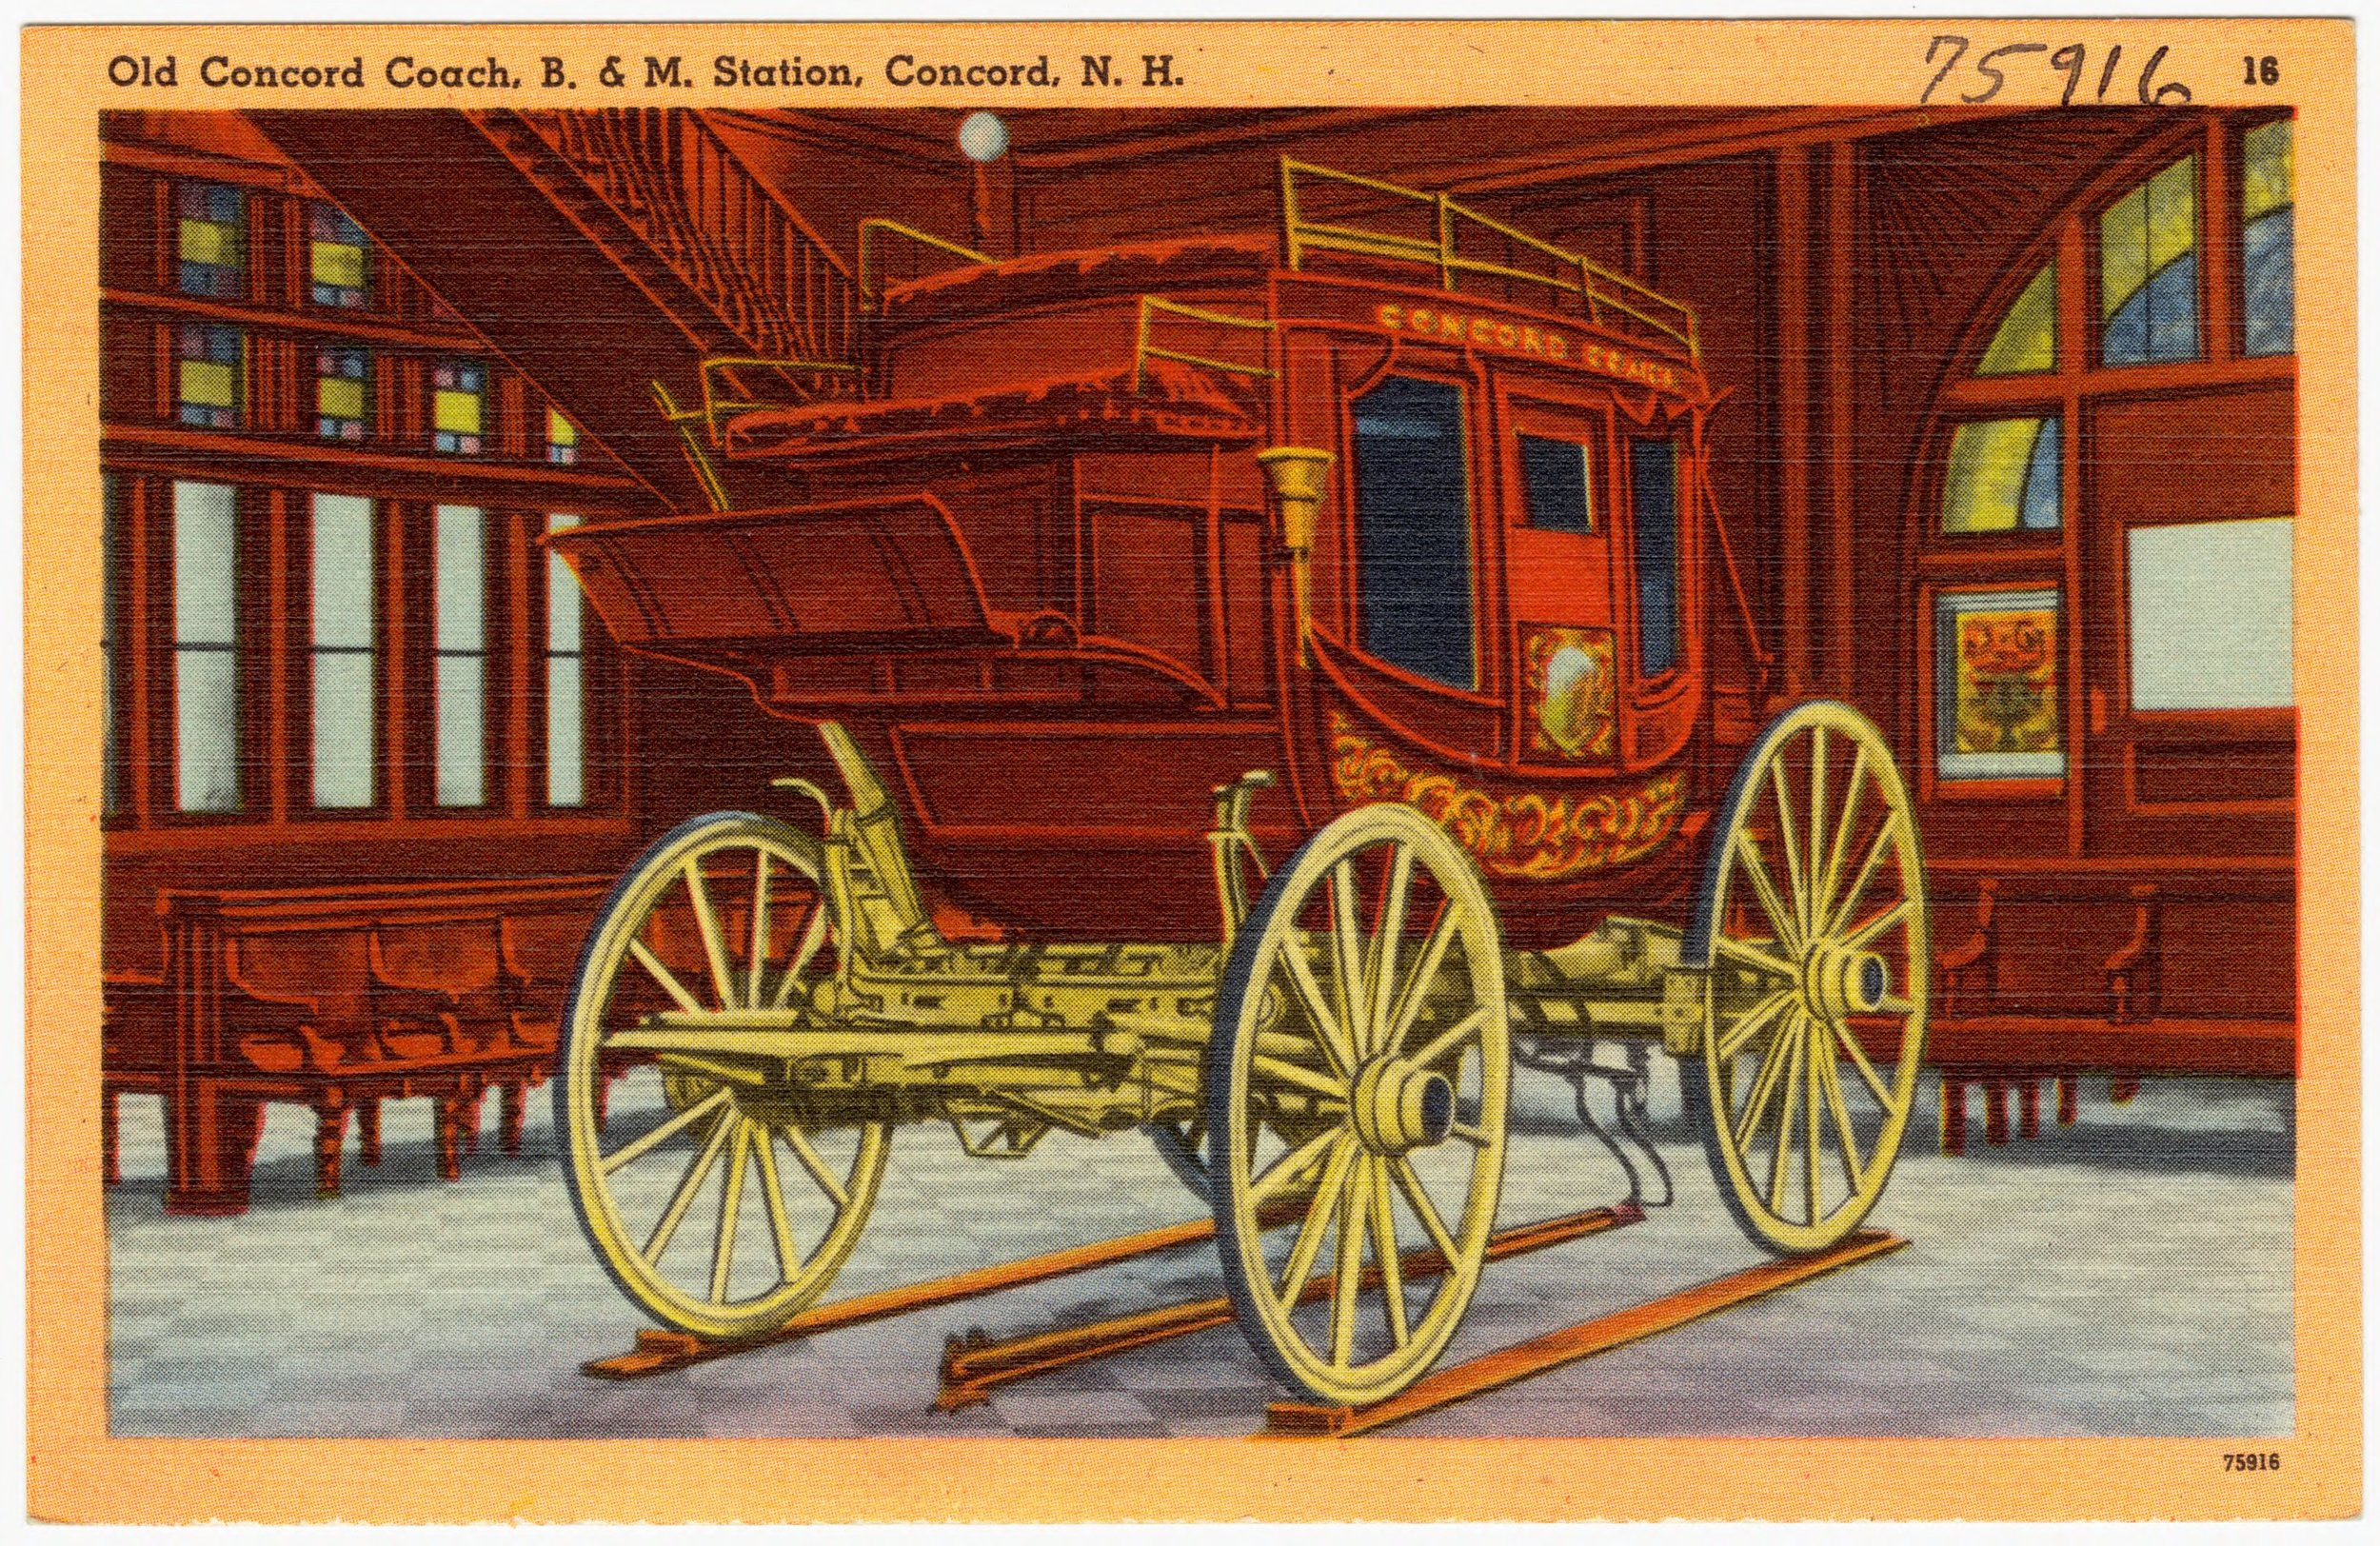 Old_Concord_Coach,_B._and_M._Station,_Concord,_N.H_(75916).jpg